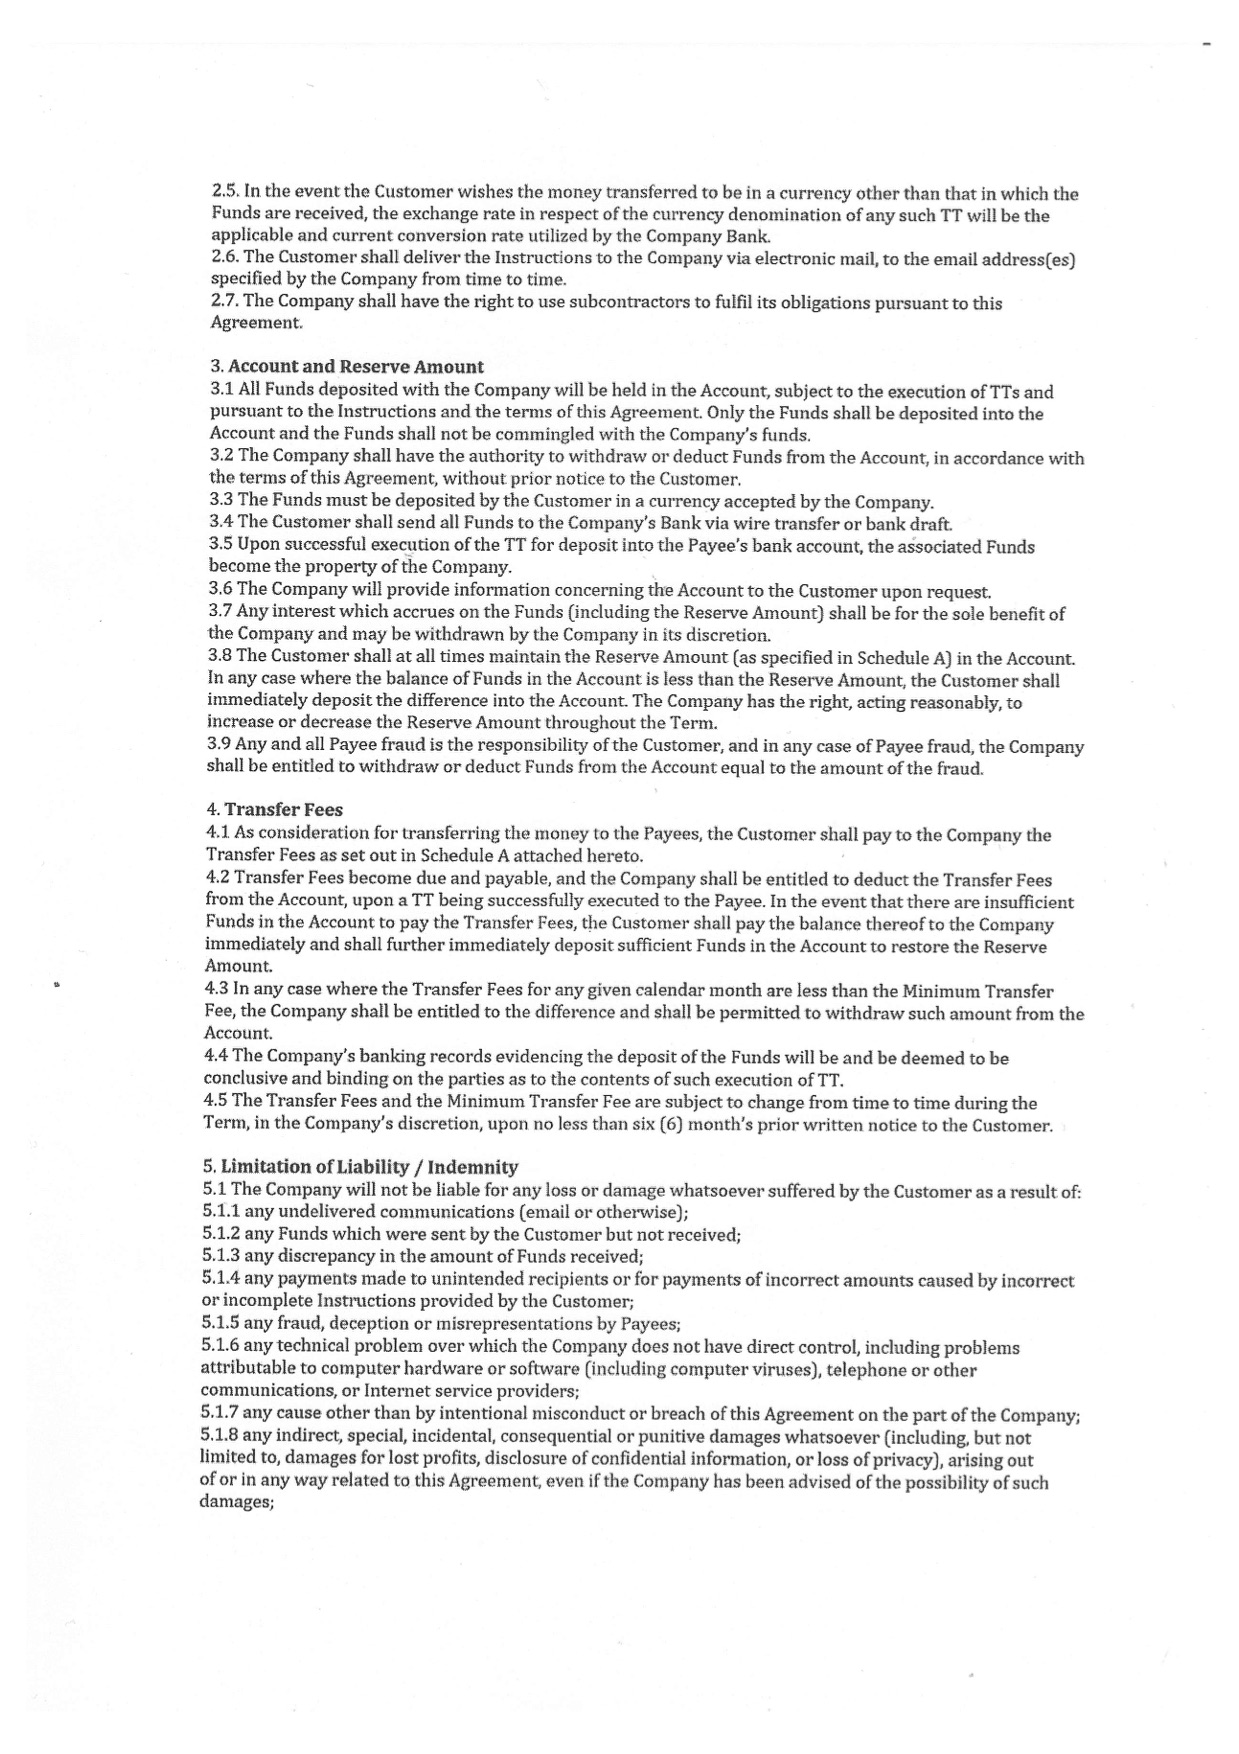 IT IH Contract page2.jpg